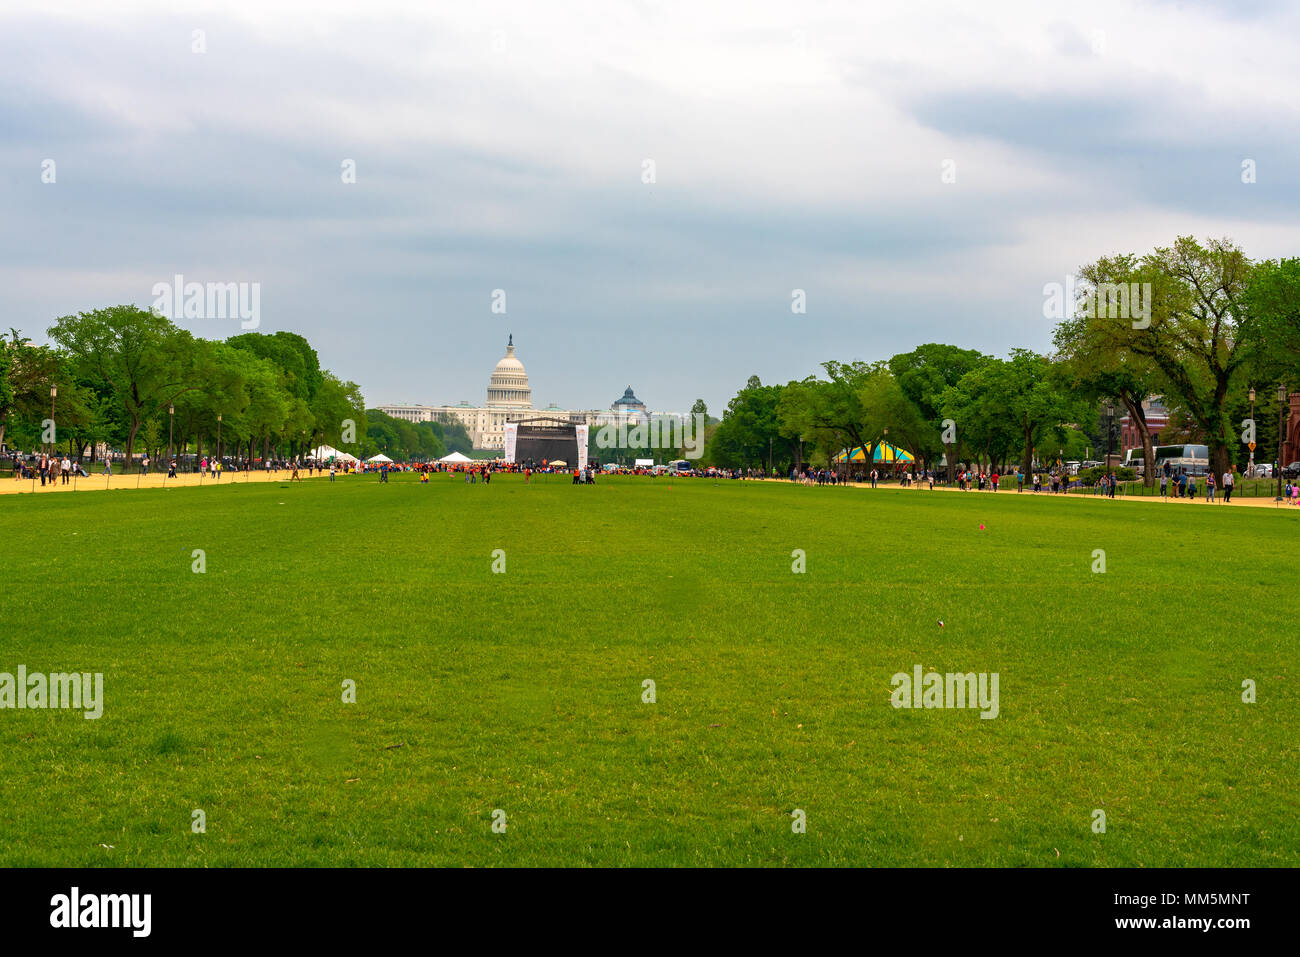 Photo of the Capital taken from the Washington Mall. - Stock Image